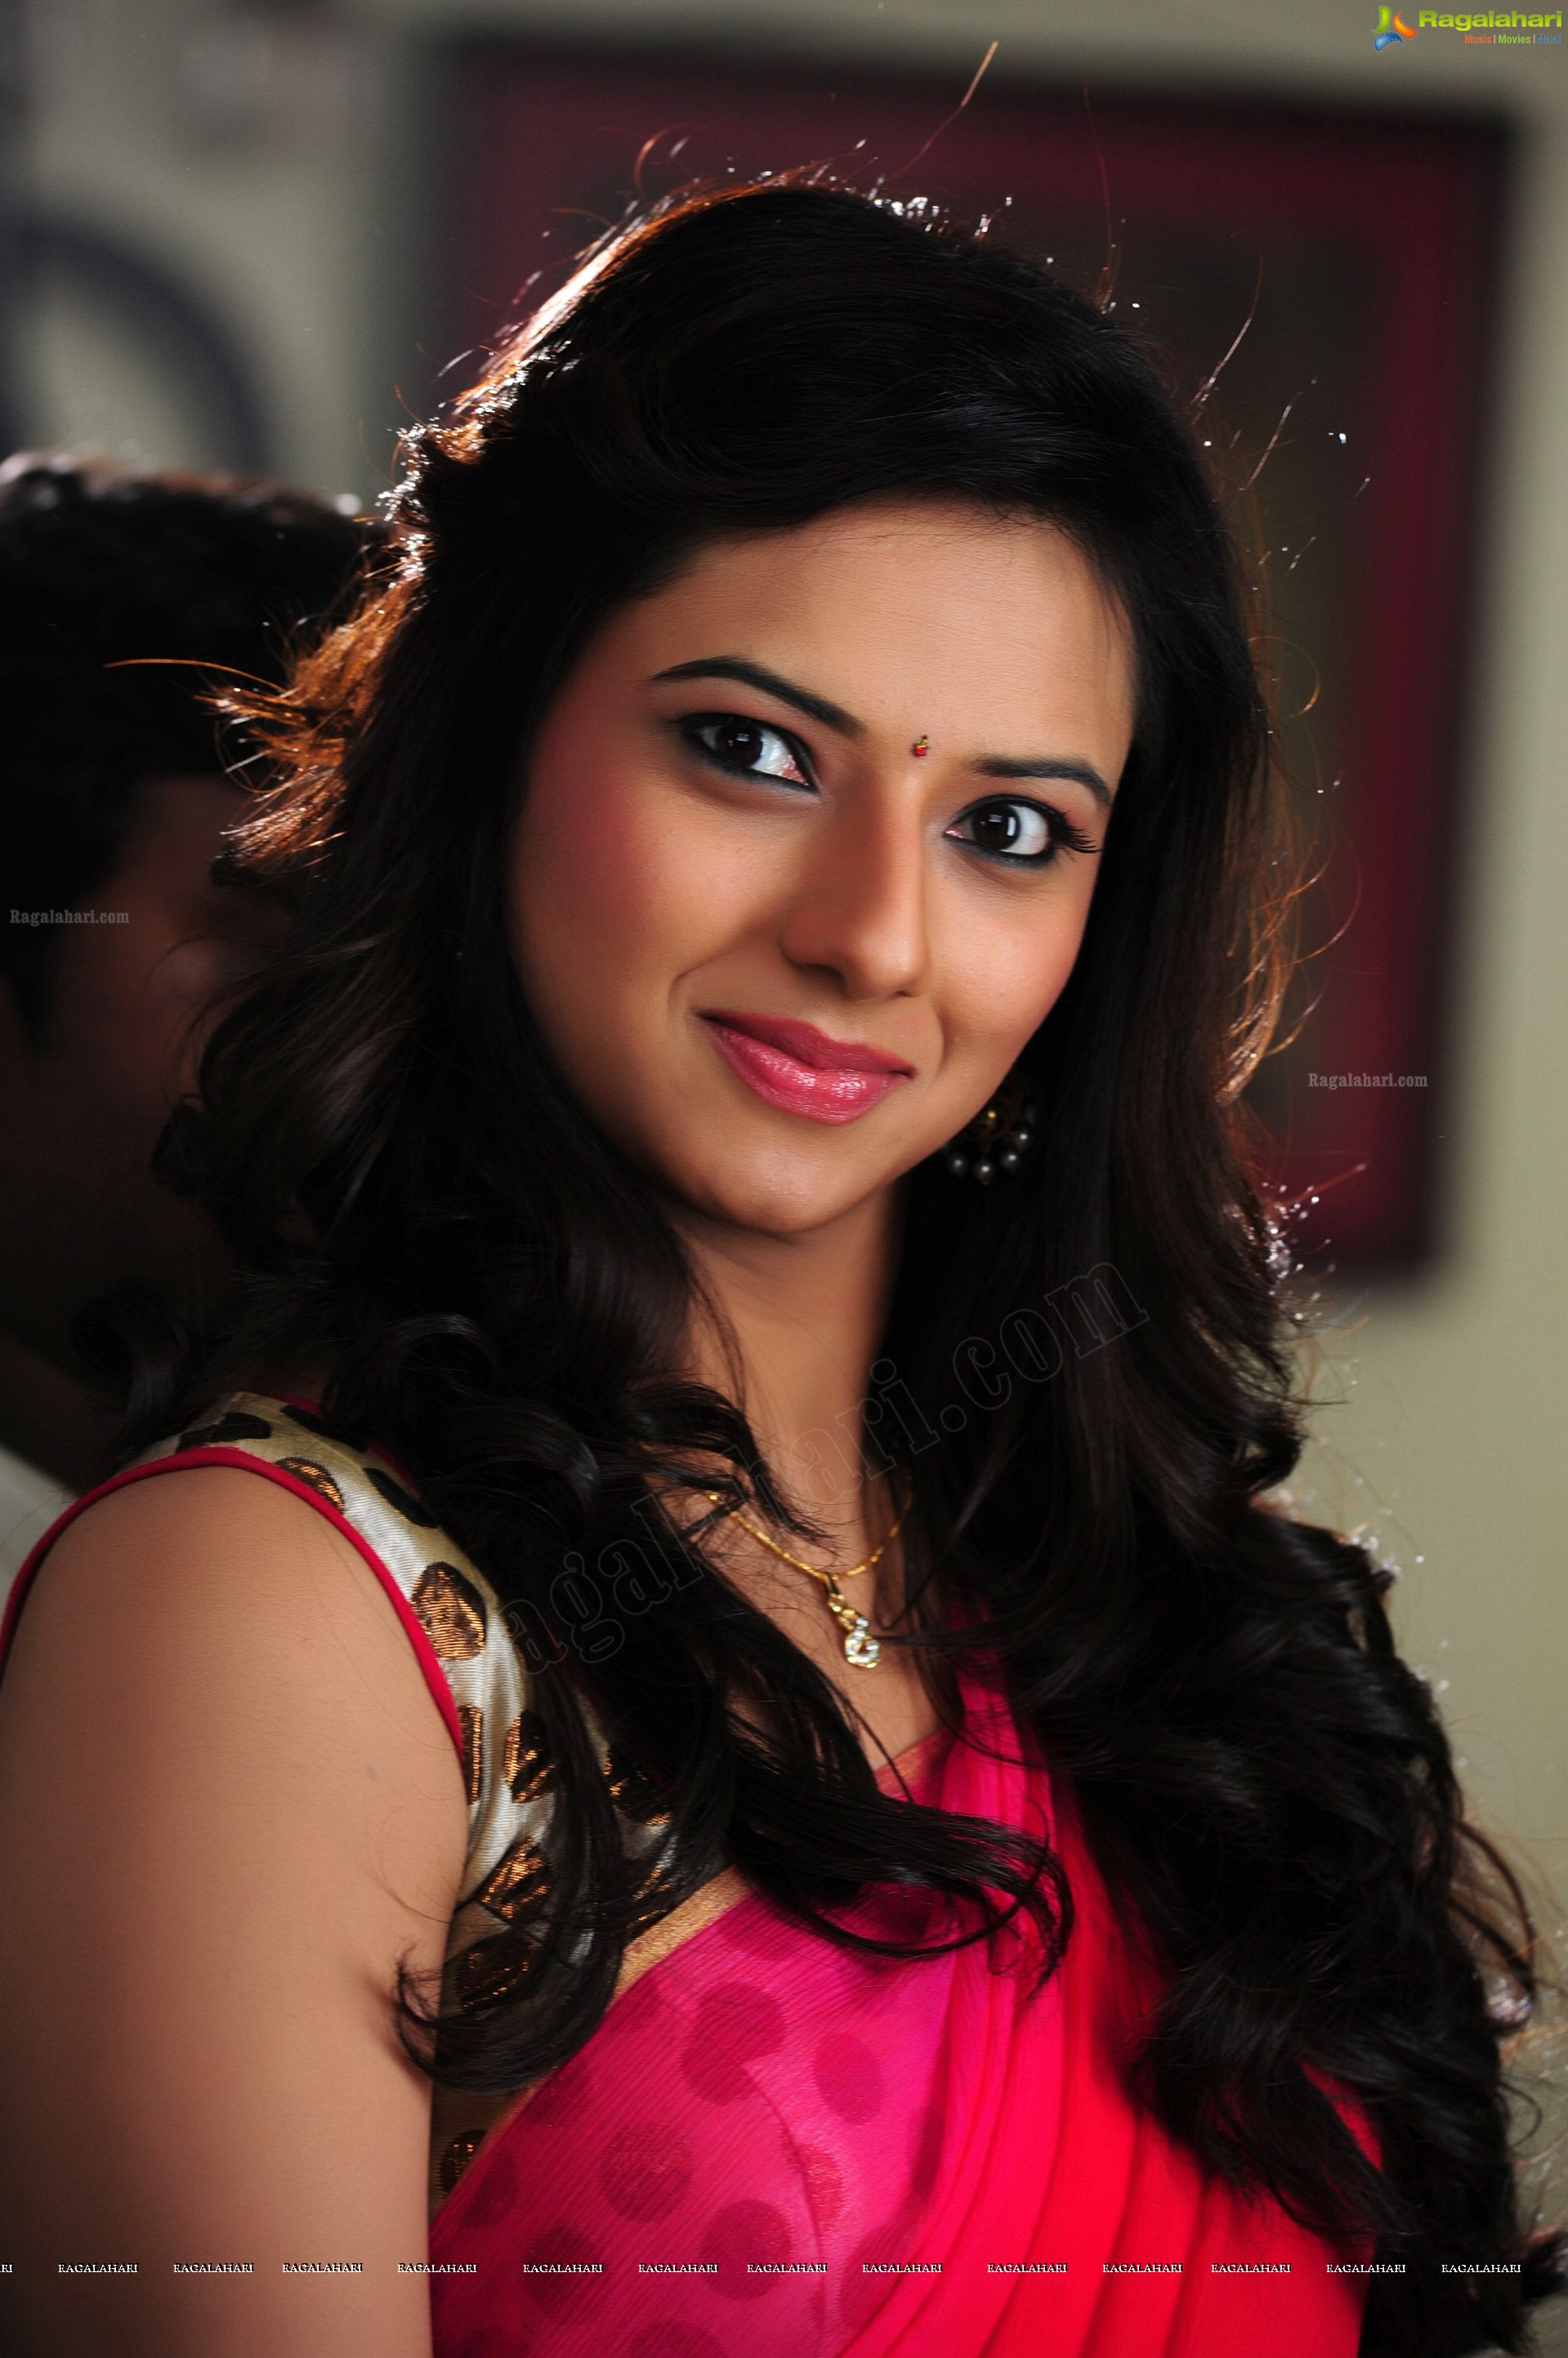 Precisely isha chawla hot absolutely